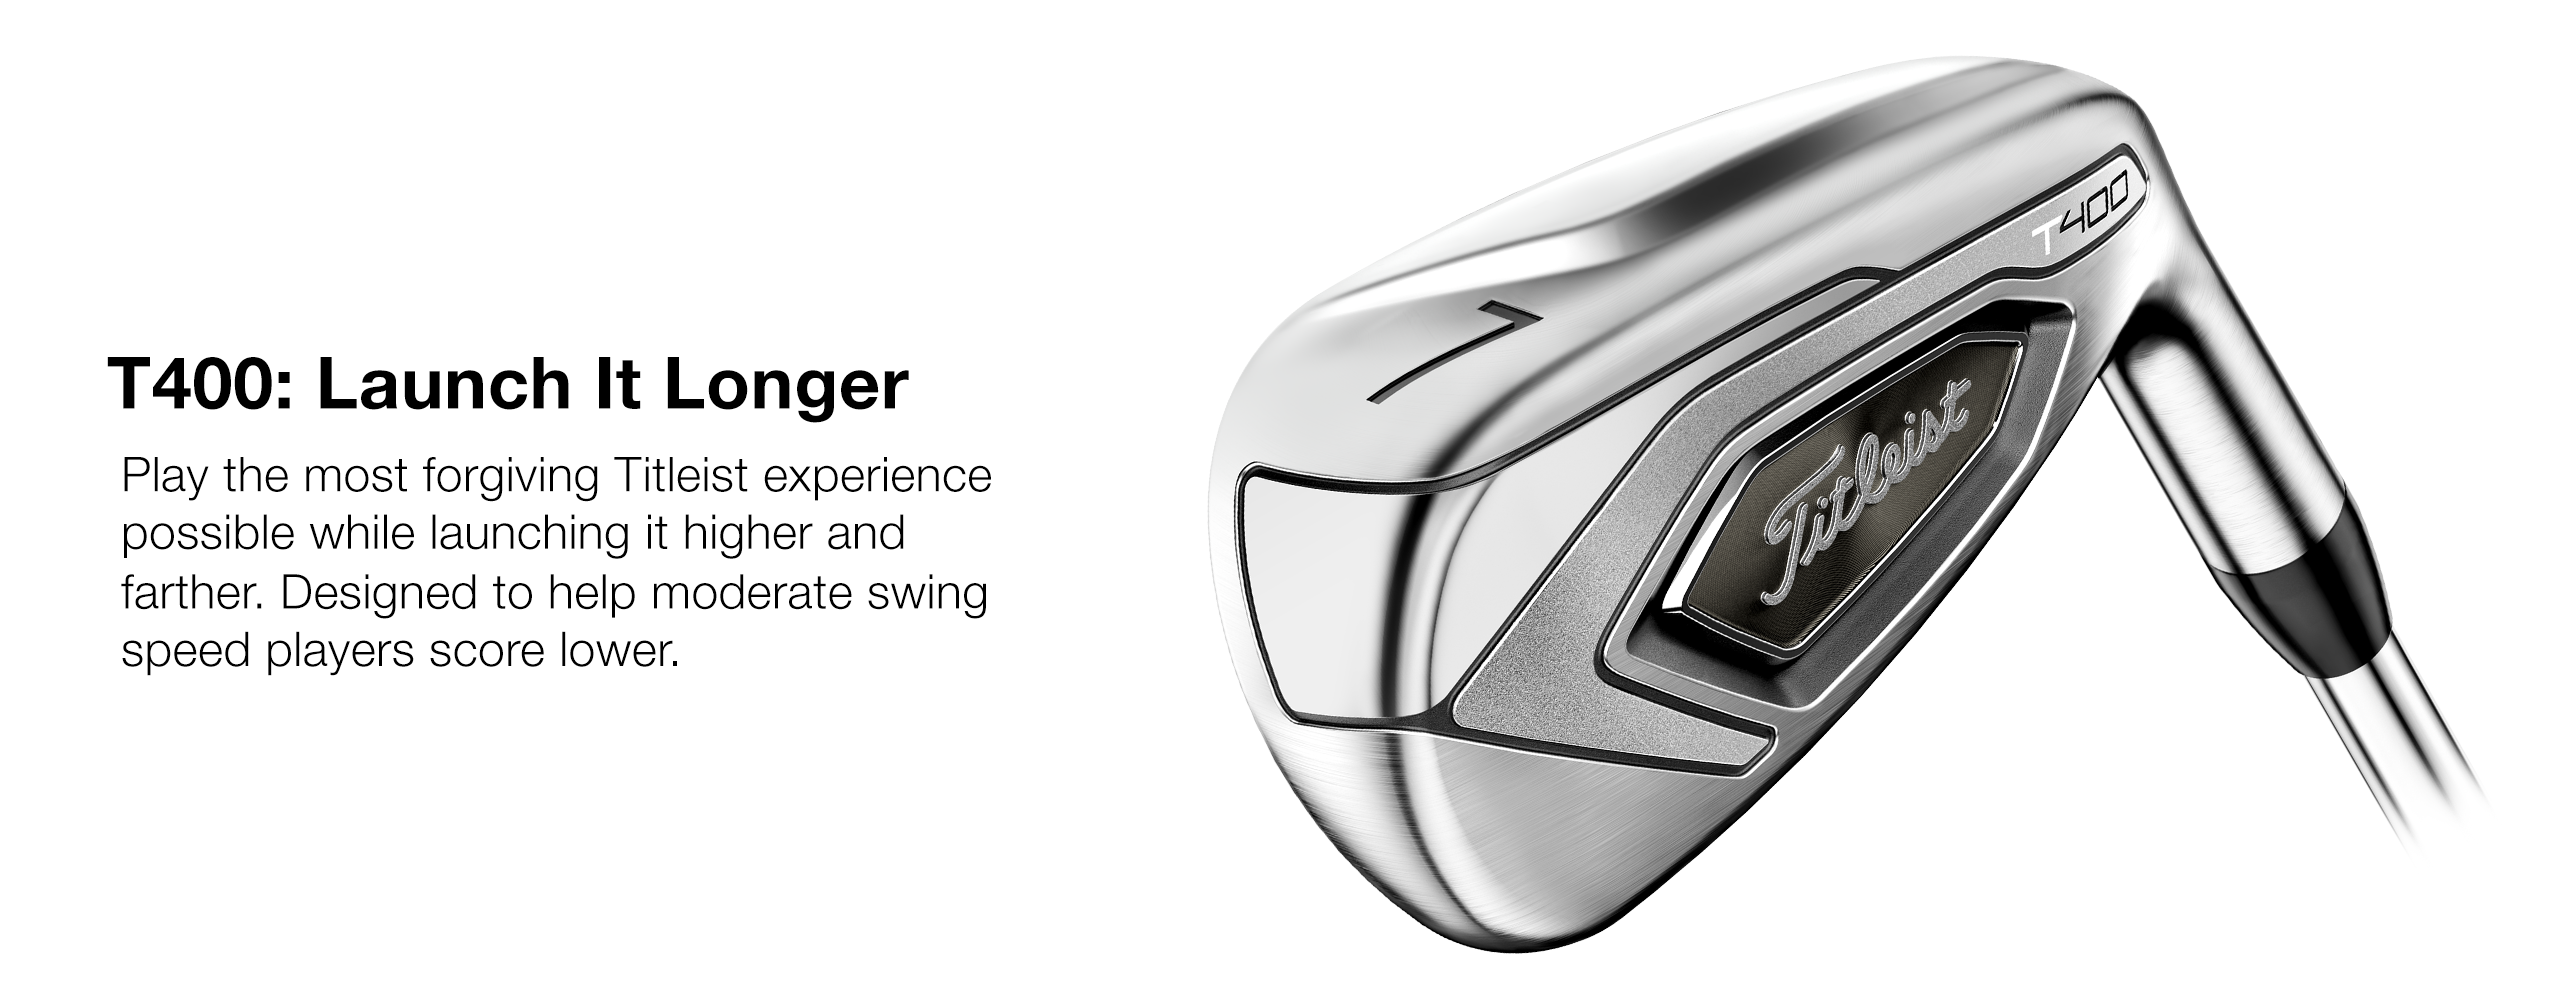 Titleist T400 Model Overview